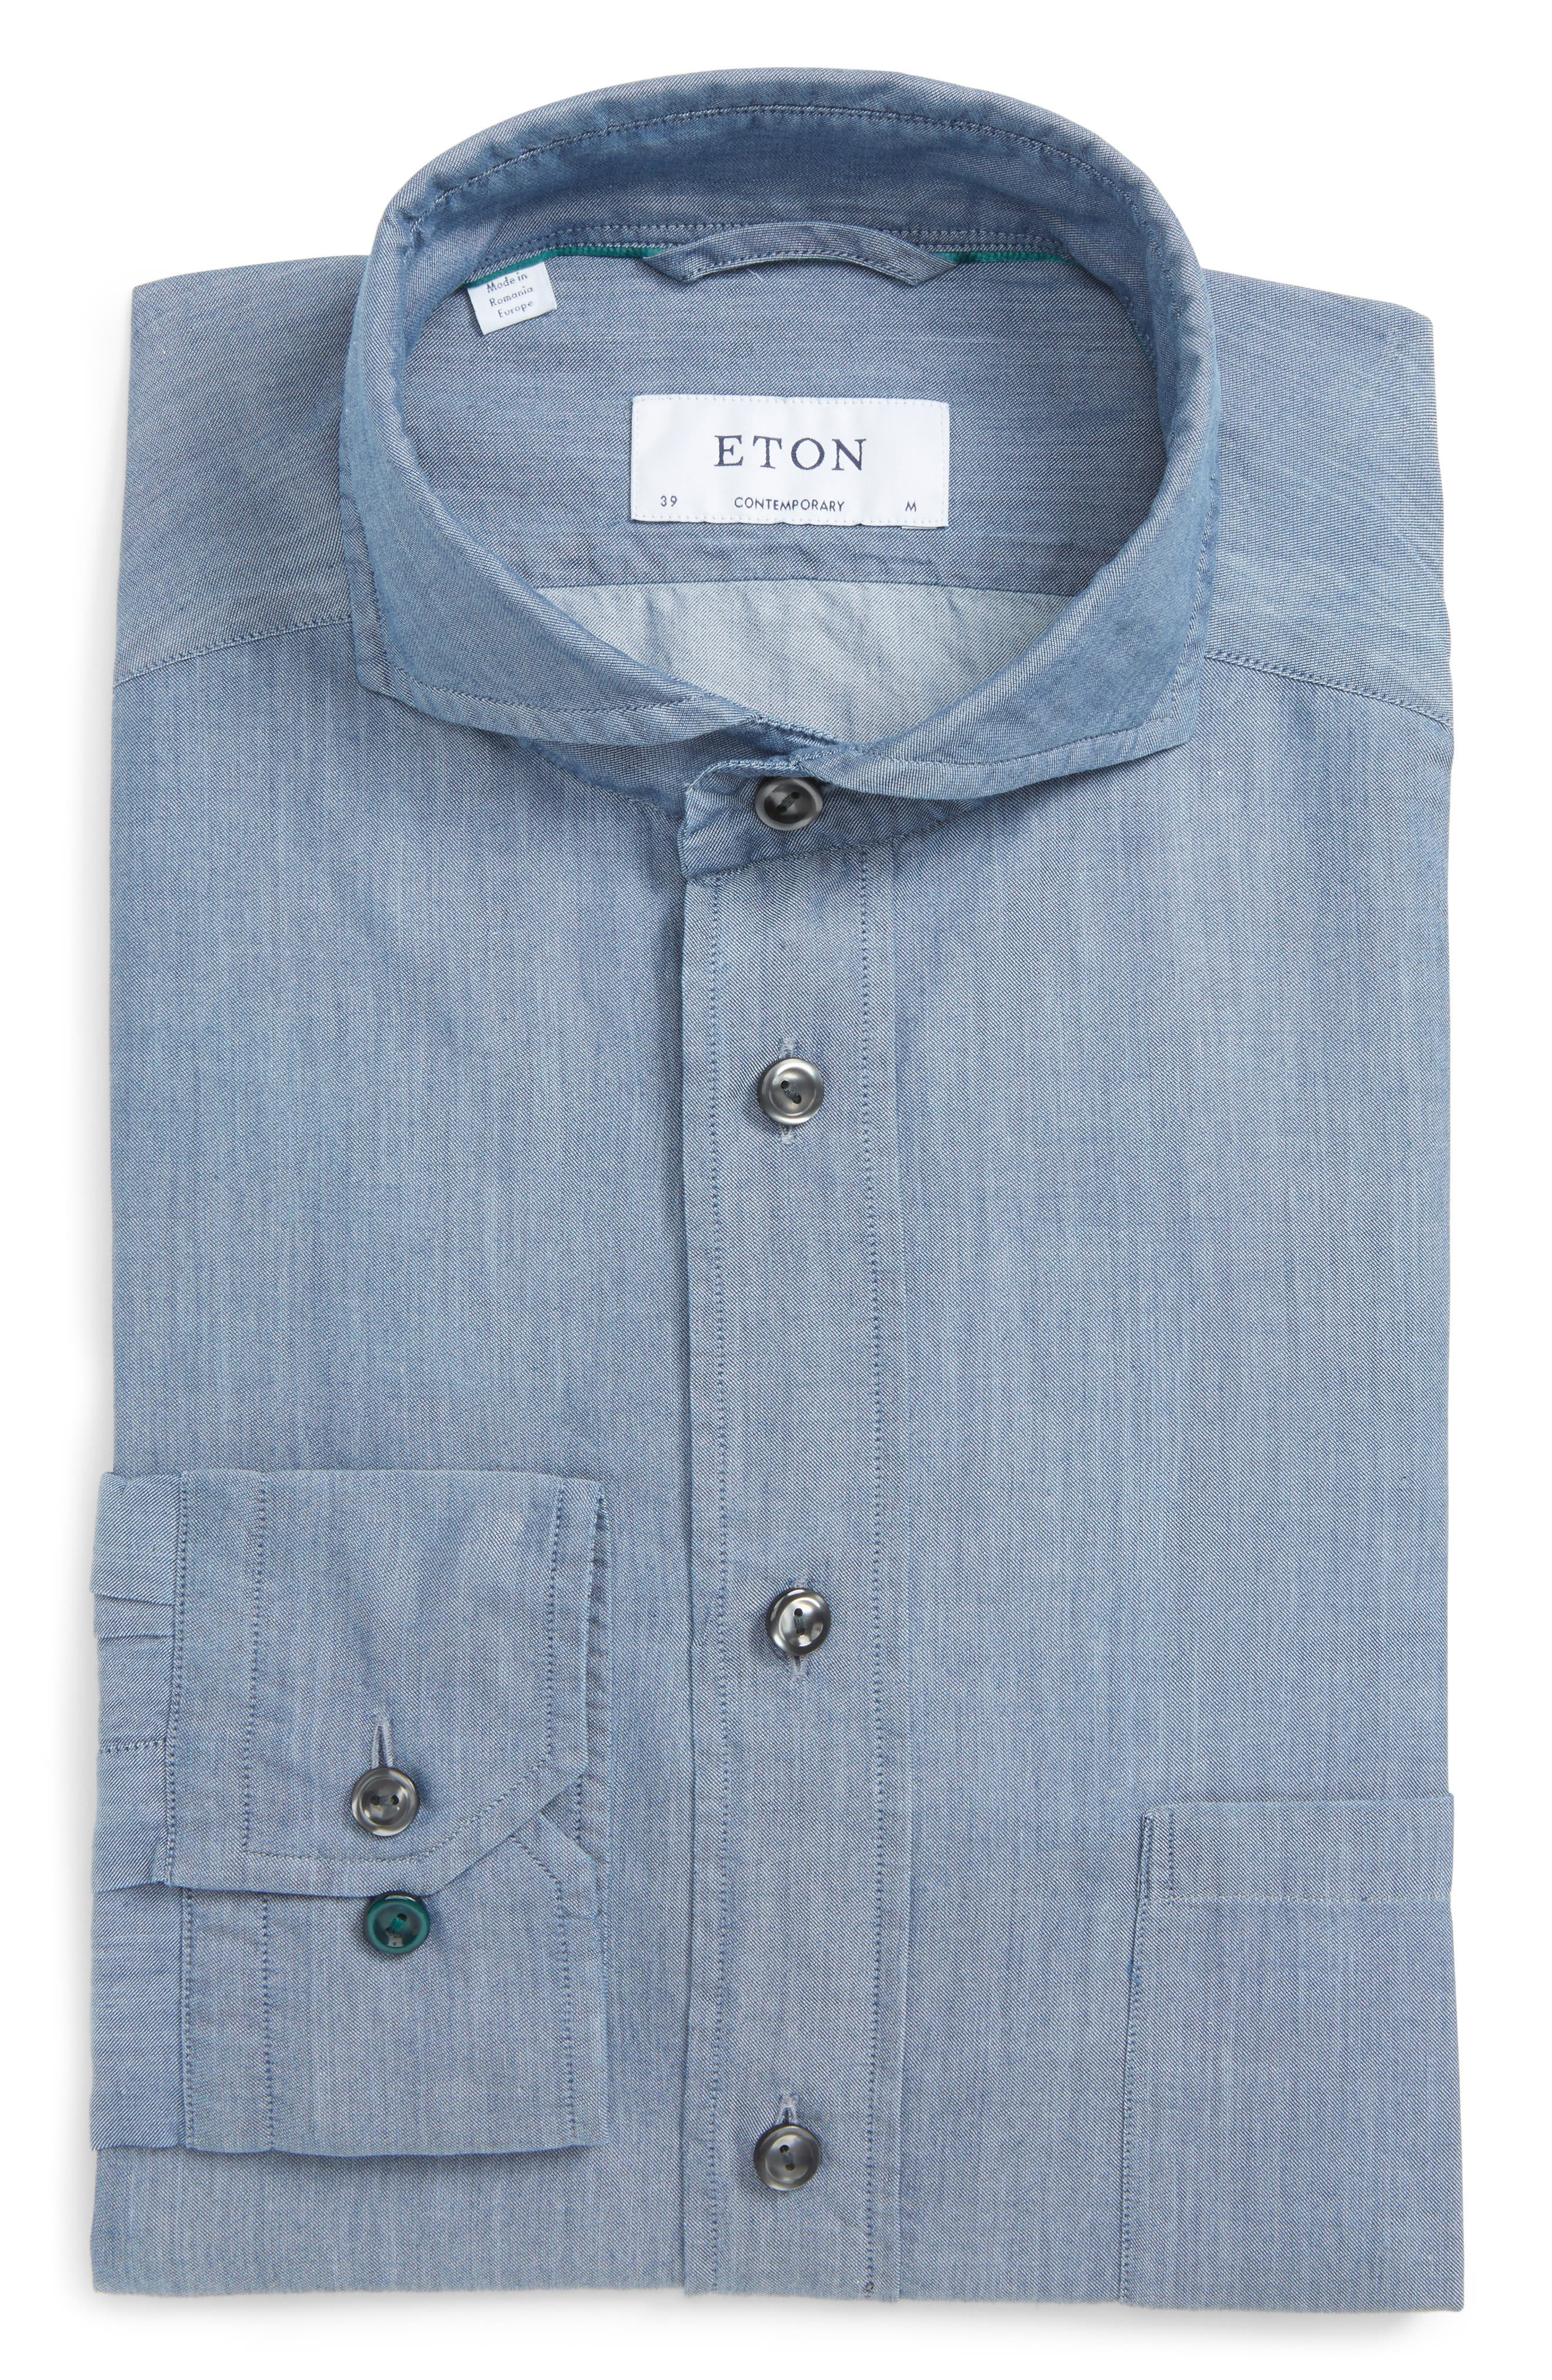 Main Image - Eton Contemporary Fit Chambray Dress Shirt